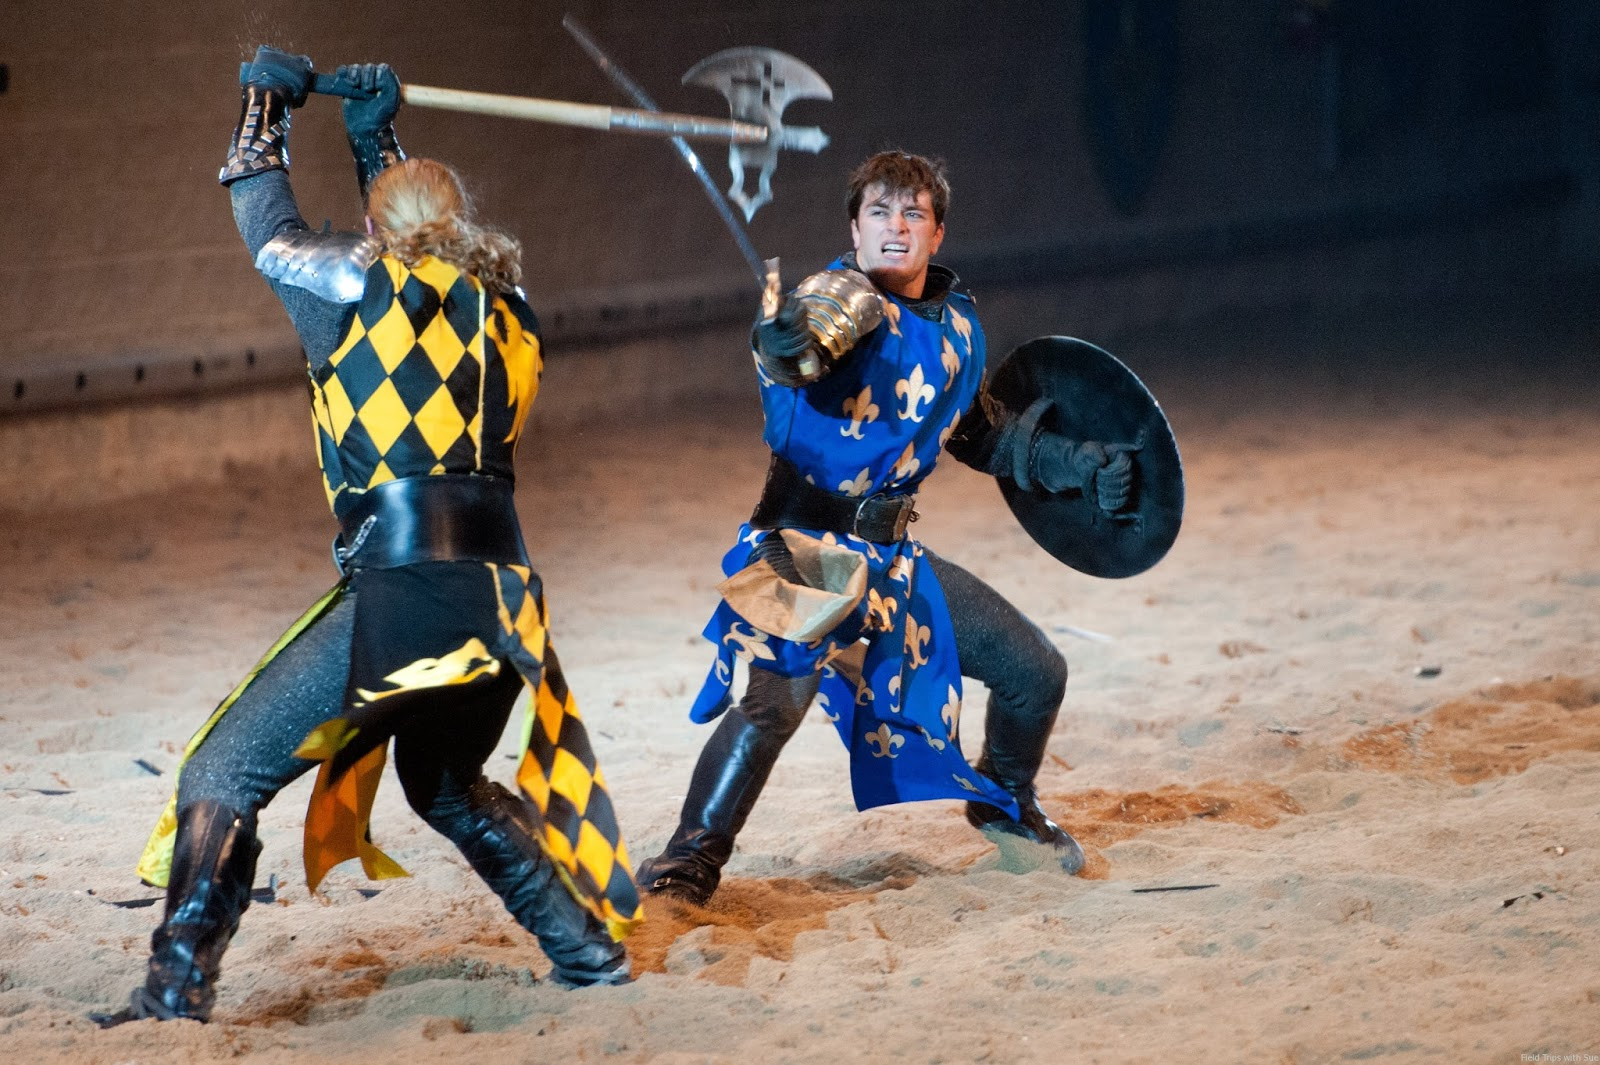 Eason Kamander's blog: Camp 78 Trip to Medieval Times